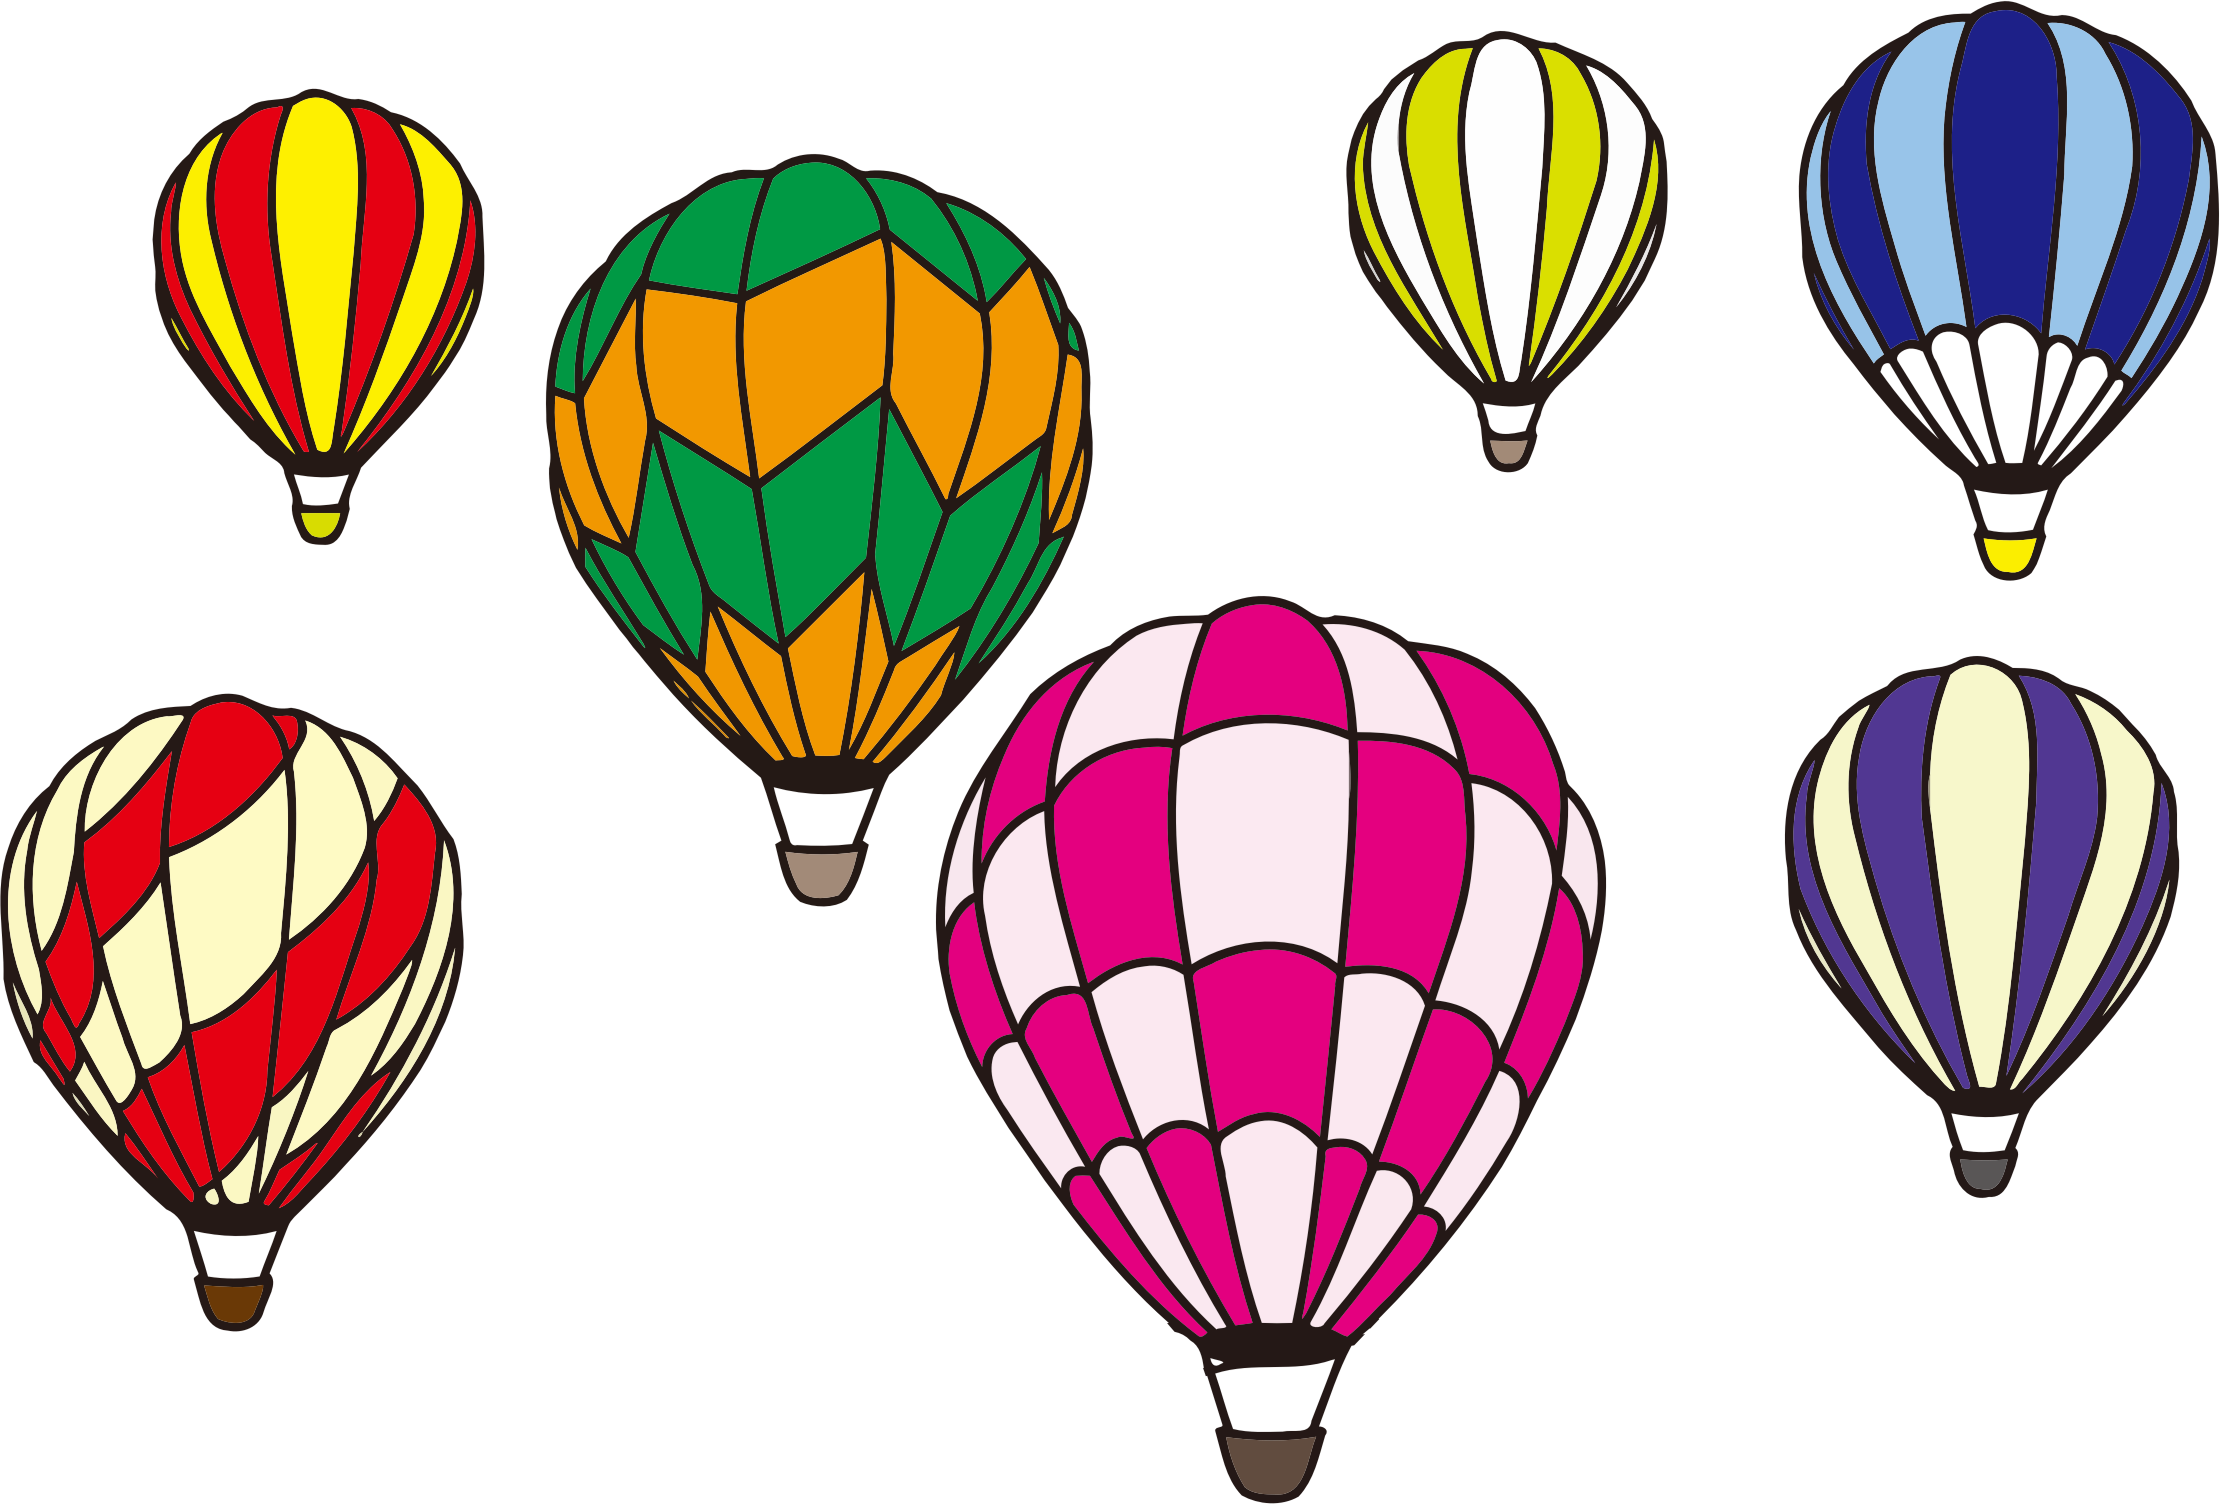 Hot air balloon png transparent background. Scene minus icons free